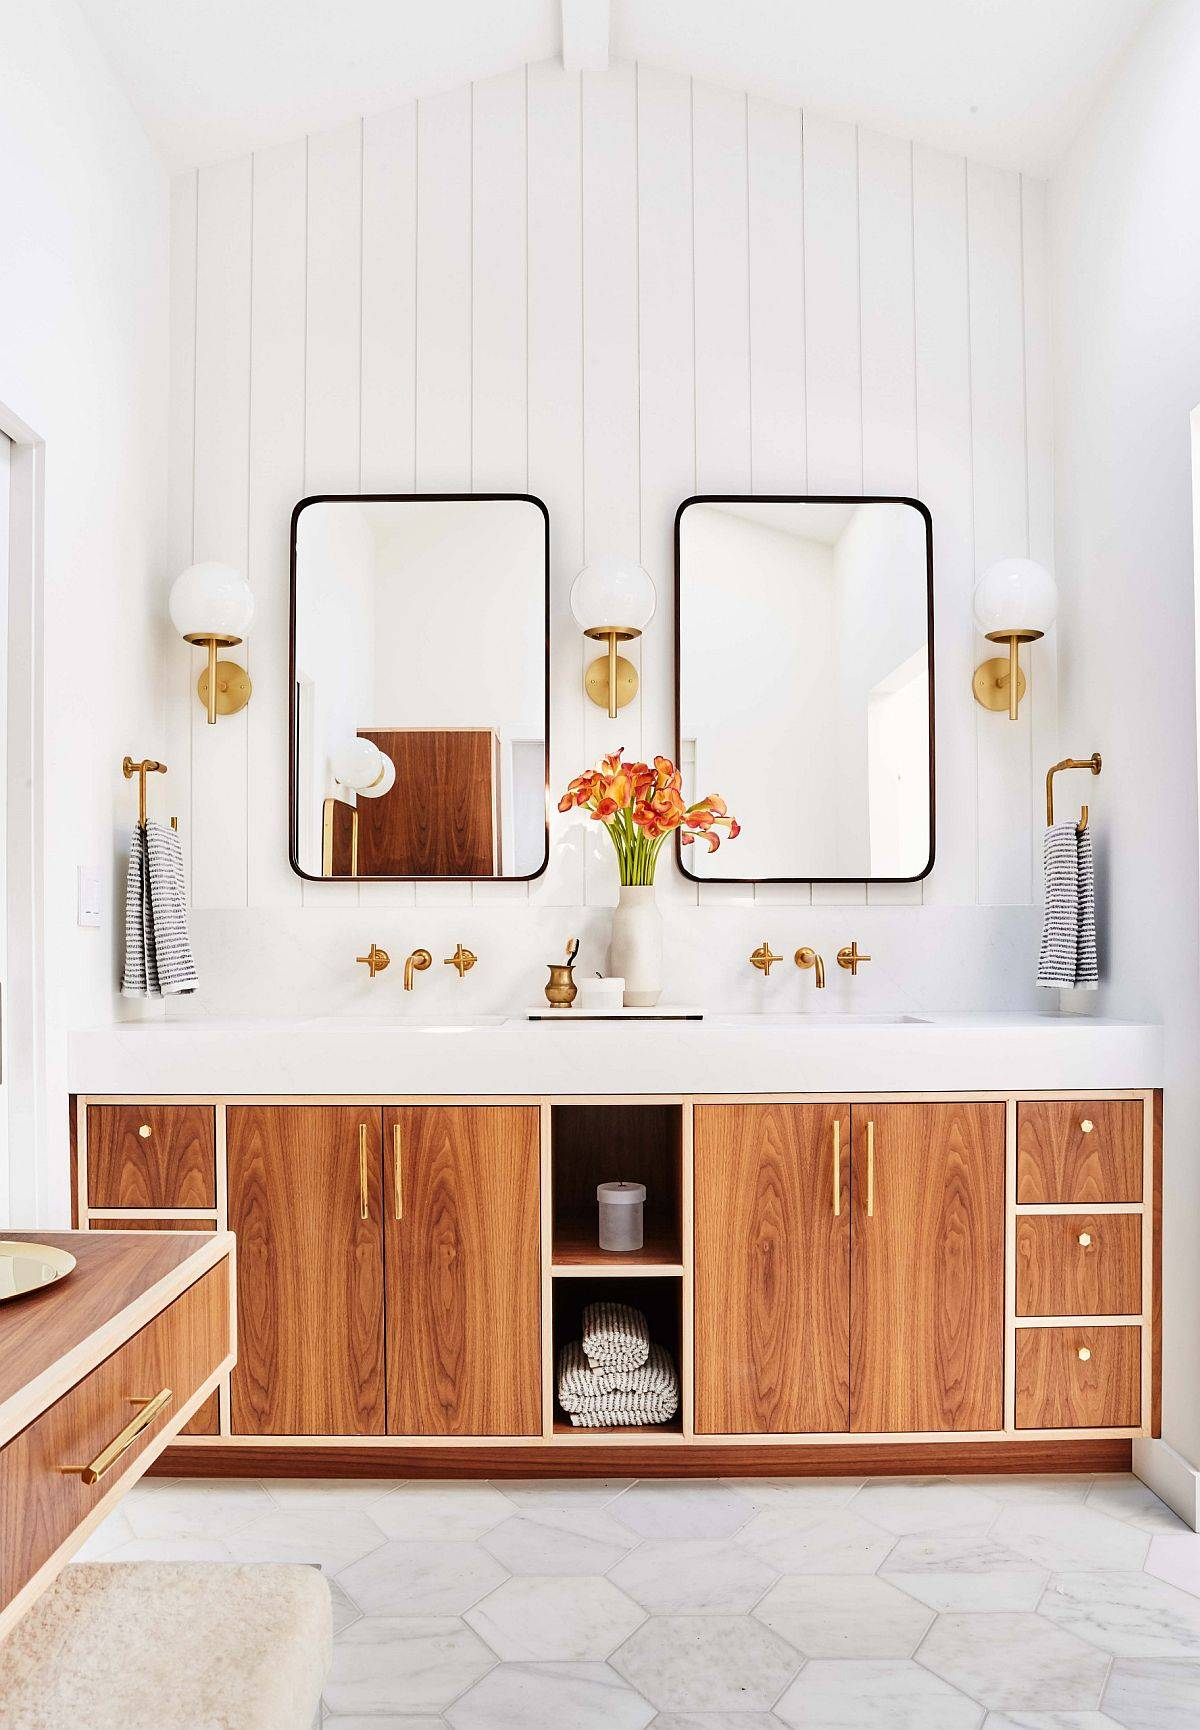 Wood-and-white-is-a-trendy-color-scheme-in-the-modern-bathroom-with-Scandinavian-touches-39697